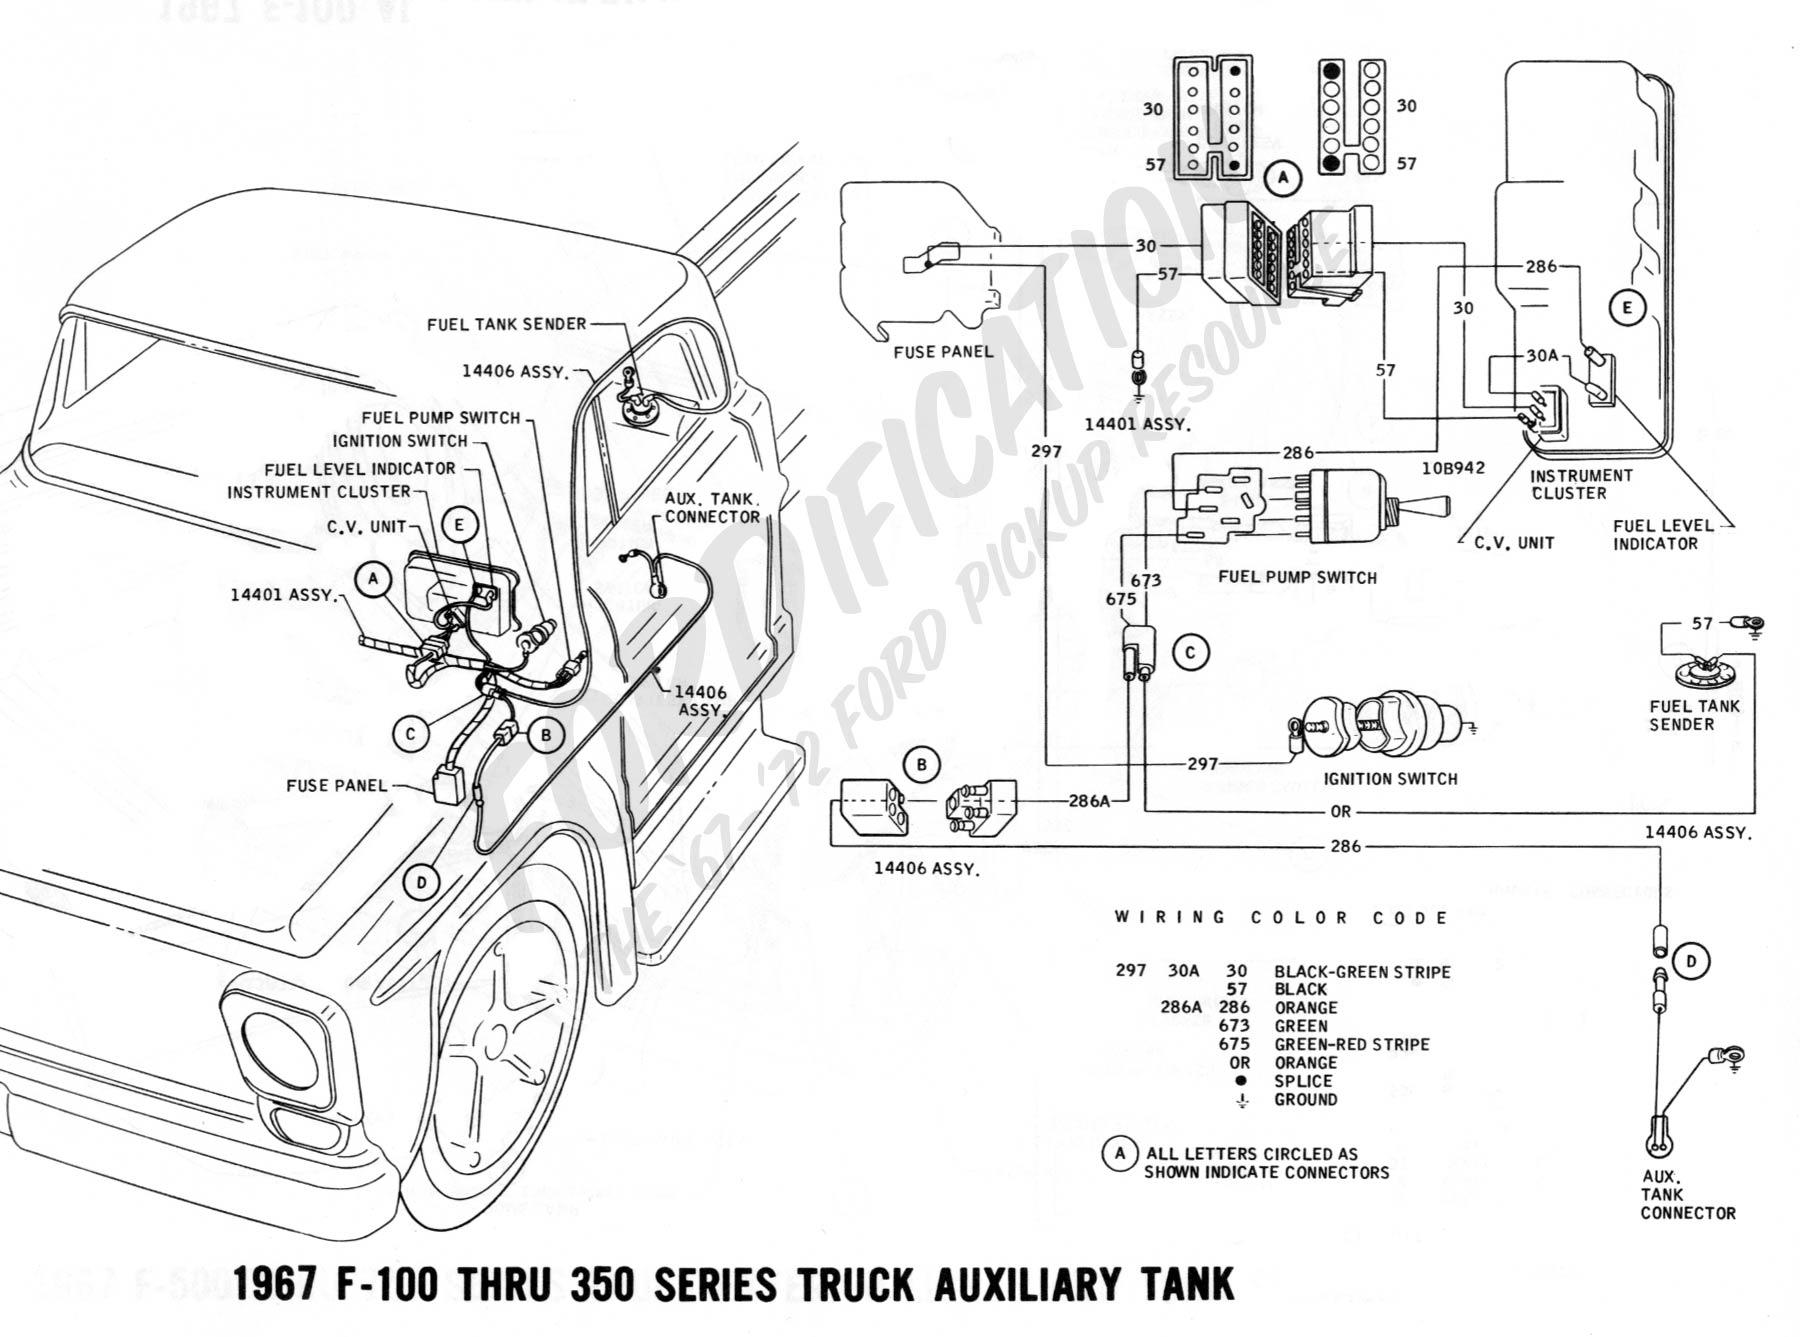 614297 Pertronix Install Got Some Questions Need Help moreover 66025 2 together with Diagram Also 1971 Ford F100 Ignition Wiring Diagram On 1965 Ford F100 moreover Wiring Diagrams For Every Celica Year 6g Celicas Forums With 4 Wire Ignition Switch Diagram likewise Svoc2030. on early ford bronco wiring diagram